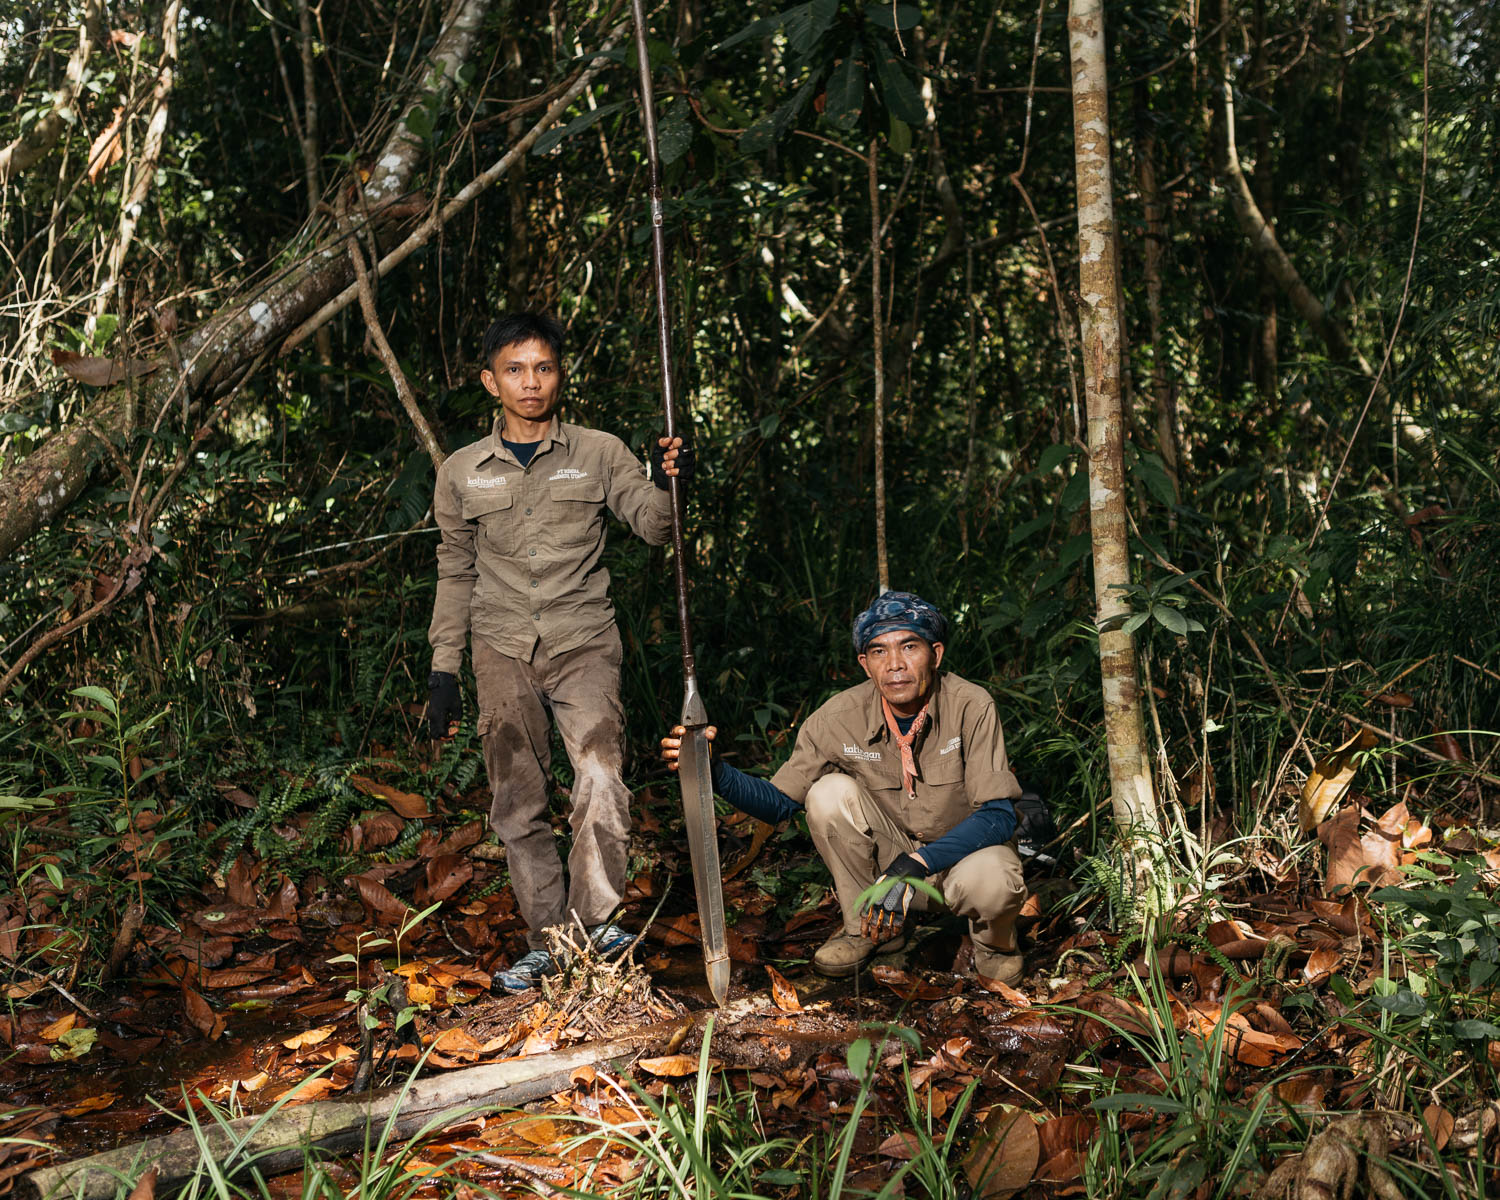 Portrait of Radius (left) and Hendri Saleh (right), staffs of PT Rimba Makmur Utama, after measuring the depth of peat in the forest.